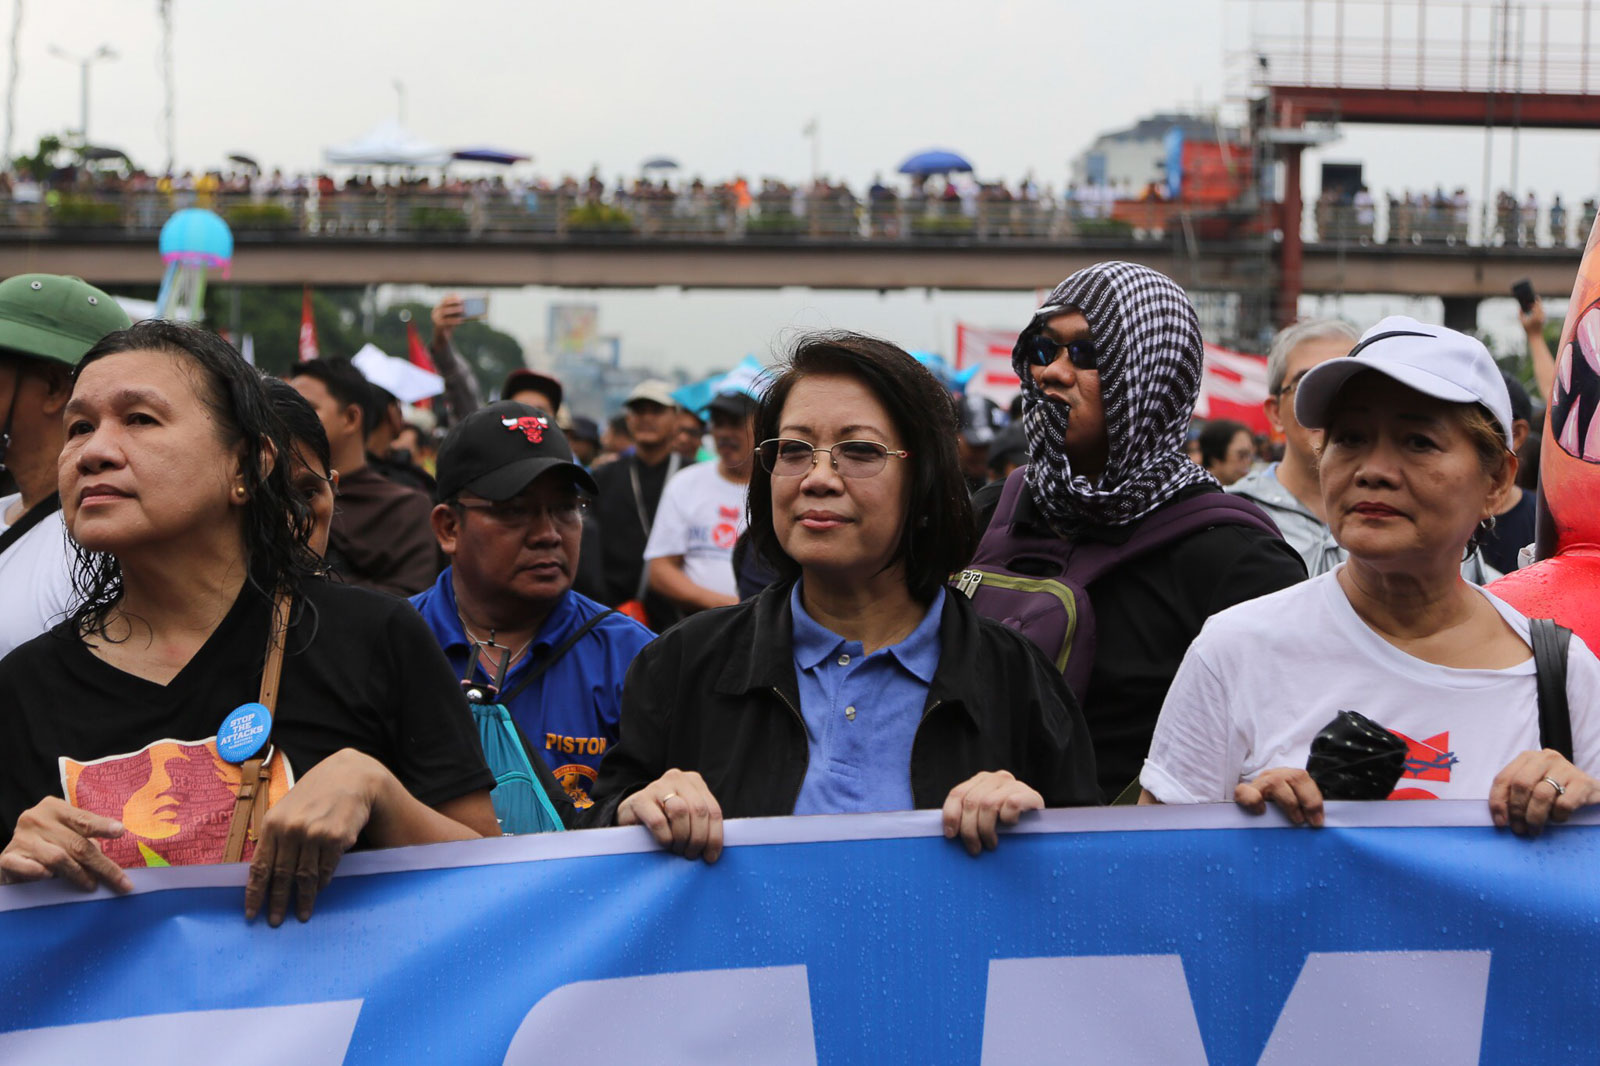 LEAD. Former chief justice Maria Lourdes Sereno is among the attendees of the United People's SONA on July 22, 2019. Photo by Jire Carreon/Rappler